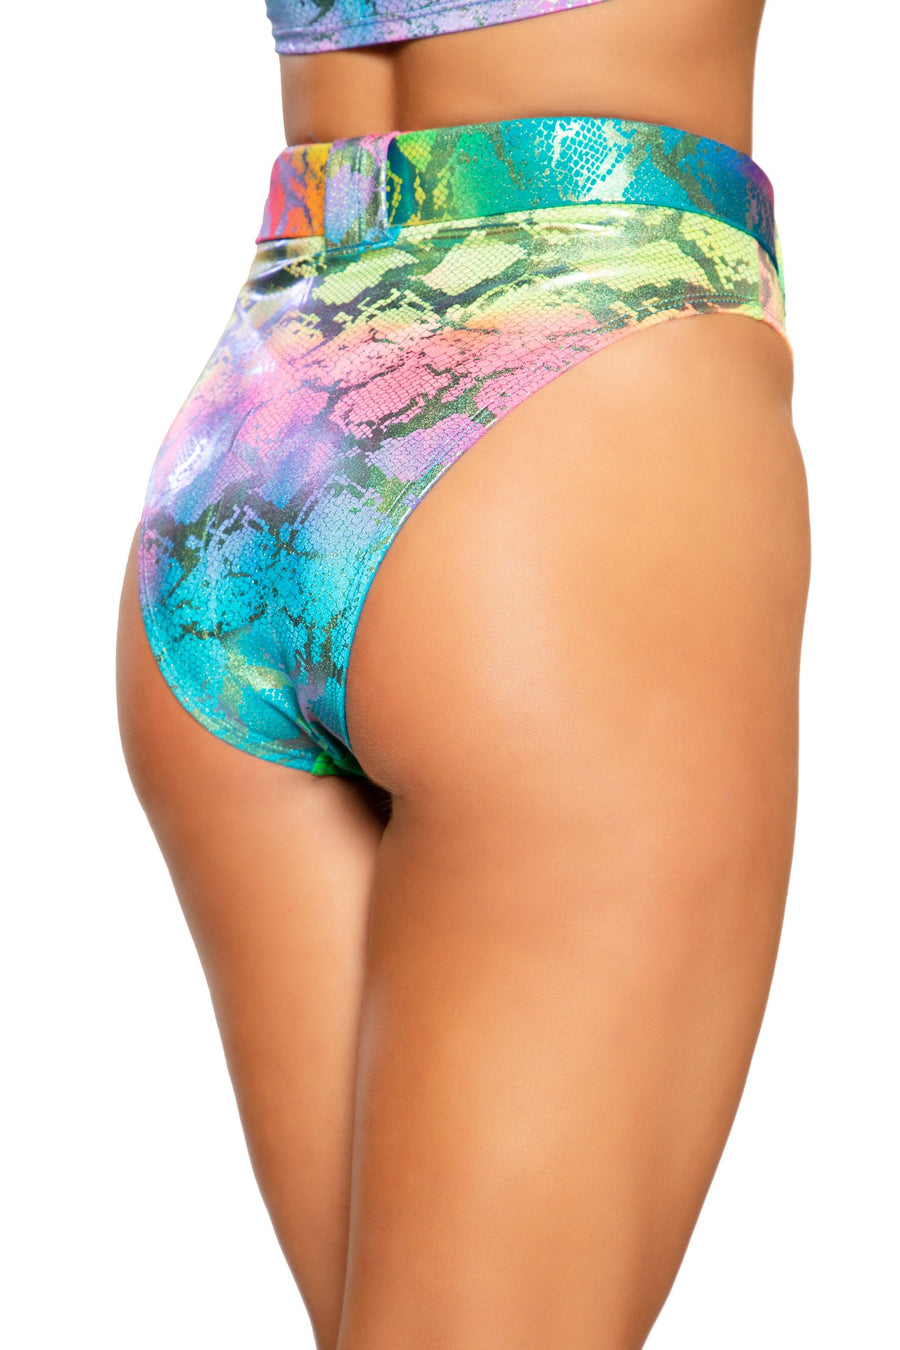 3747 - Multi Colored Snake Skin High Rise High-Waisted Shorts with Belt Detail